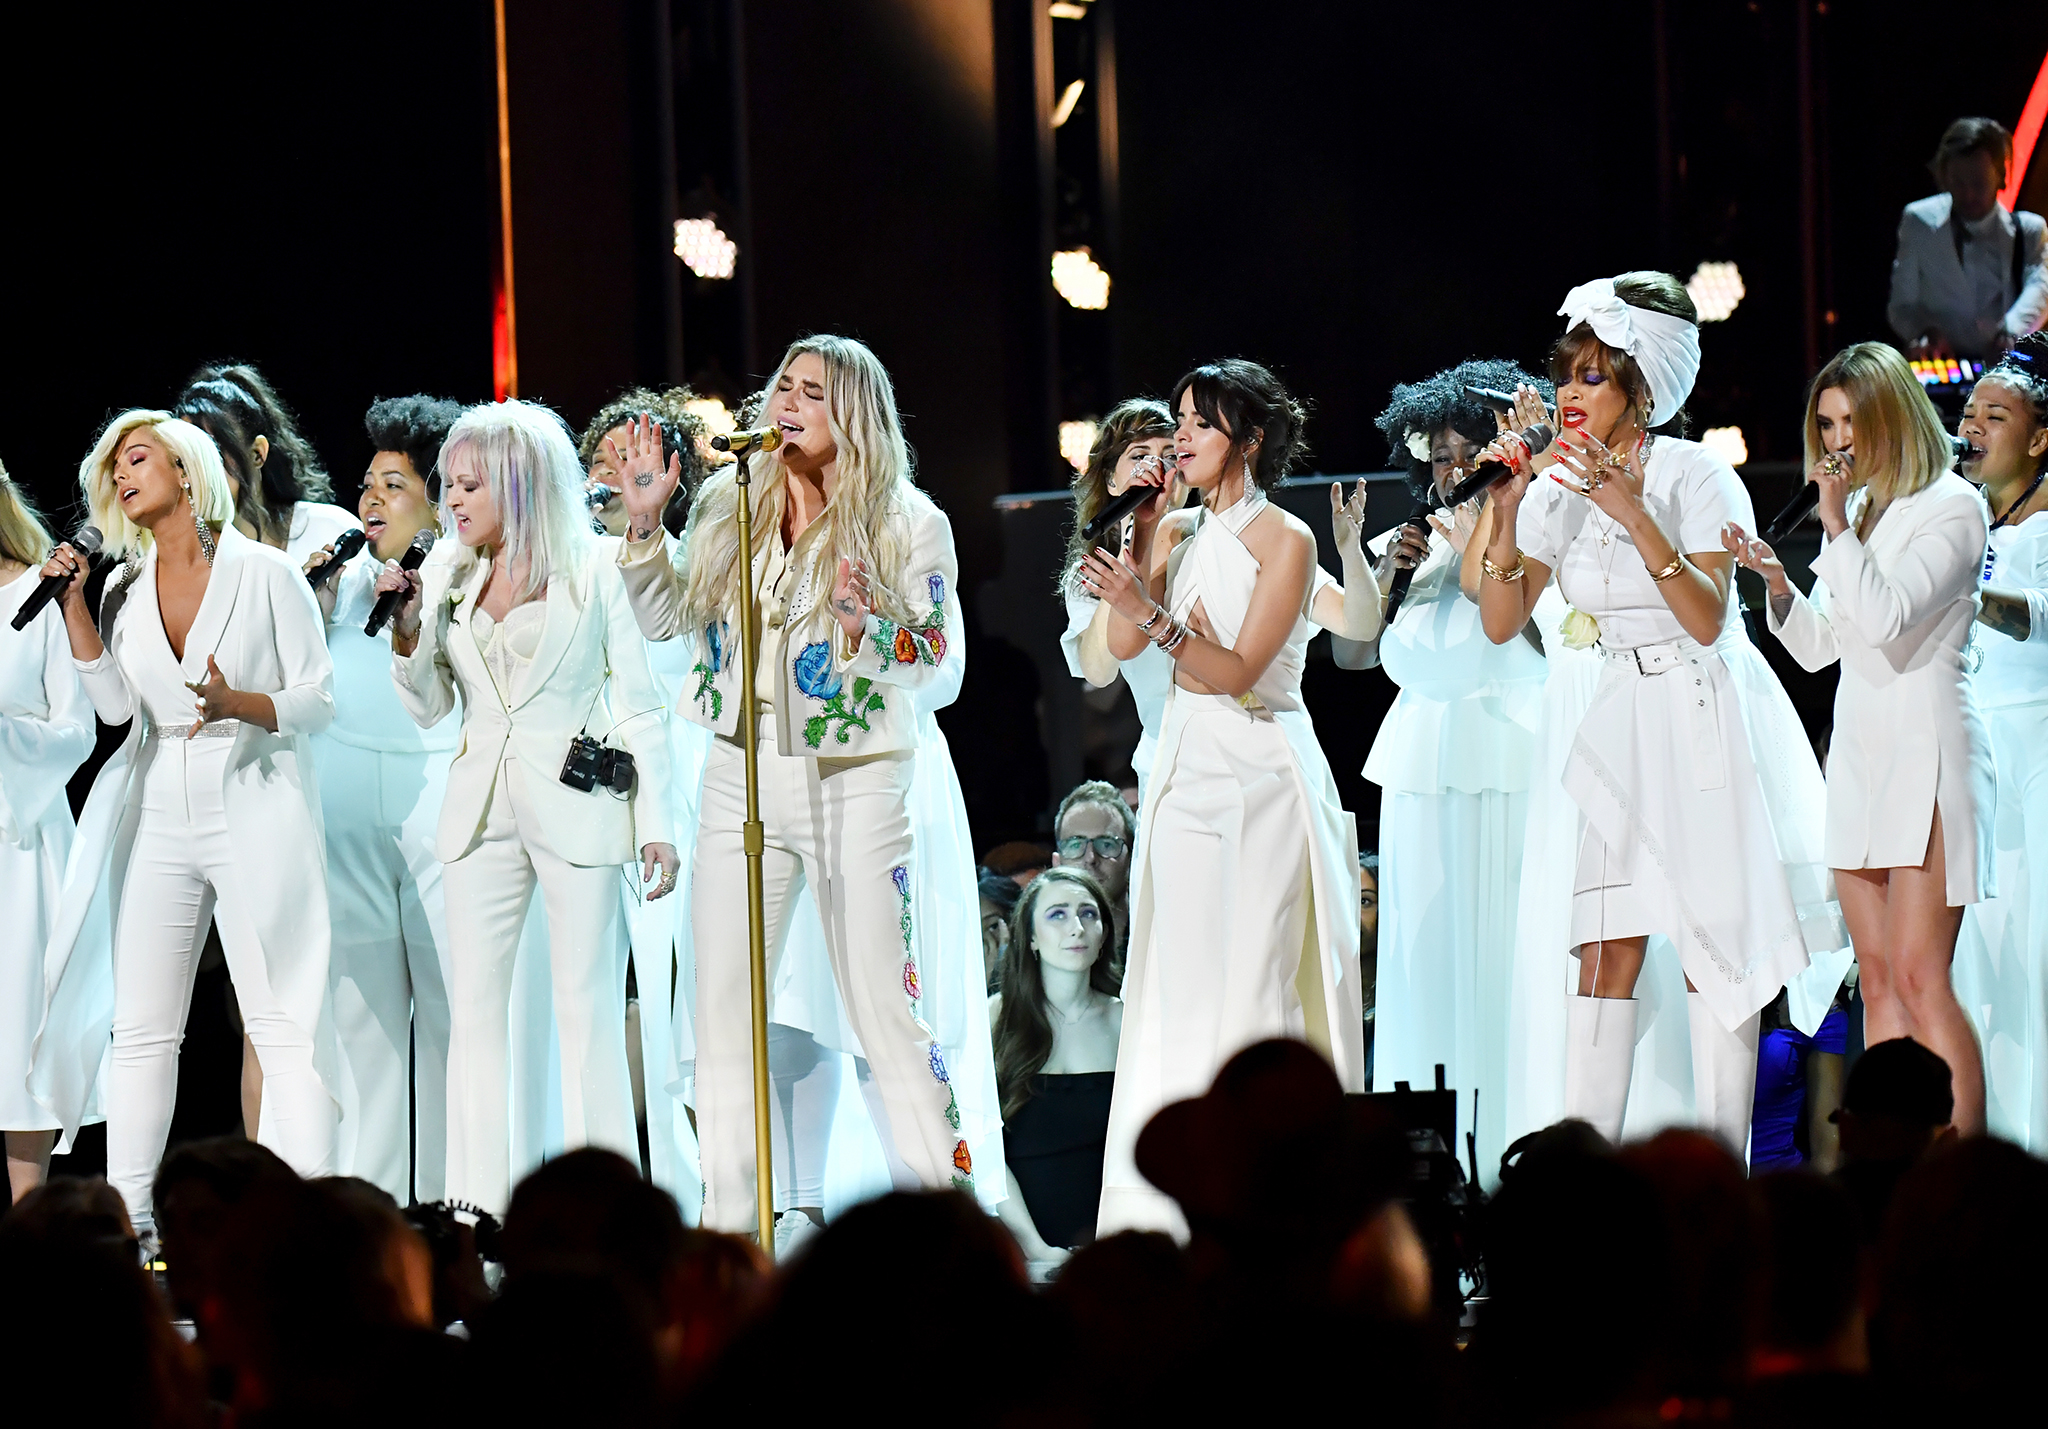 Recording artists Bebe Rexha, Cyndi Lauper, Kesha, Camila Cabello, Andra Day and Julia Michaels perform onstage during the 60th Annual GRAMMY Awards at Madison Square Garden on January 28, 2018 in New York City. Jeff Kravitz—FilmMagic/Getty Images